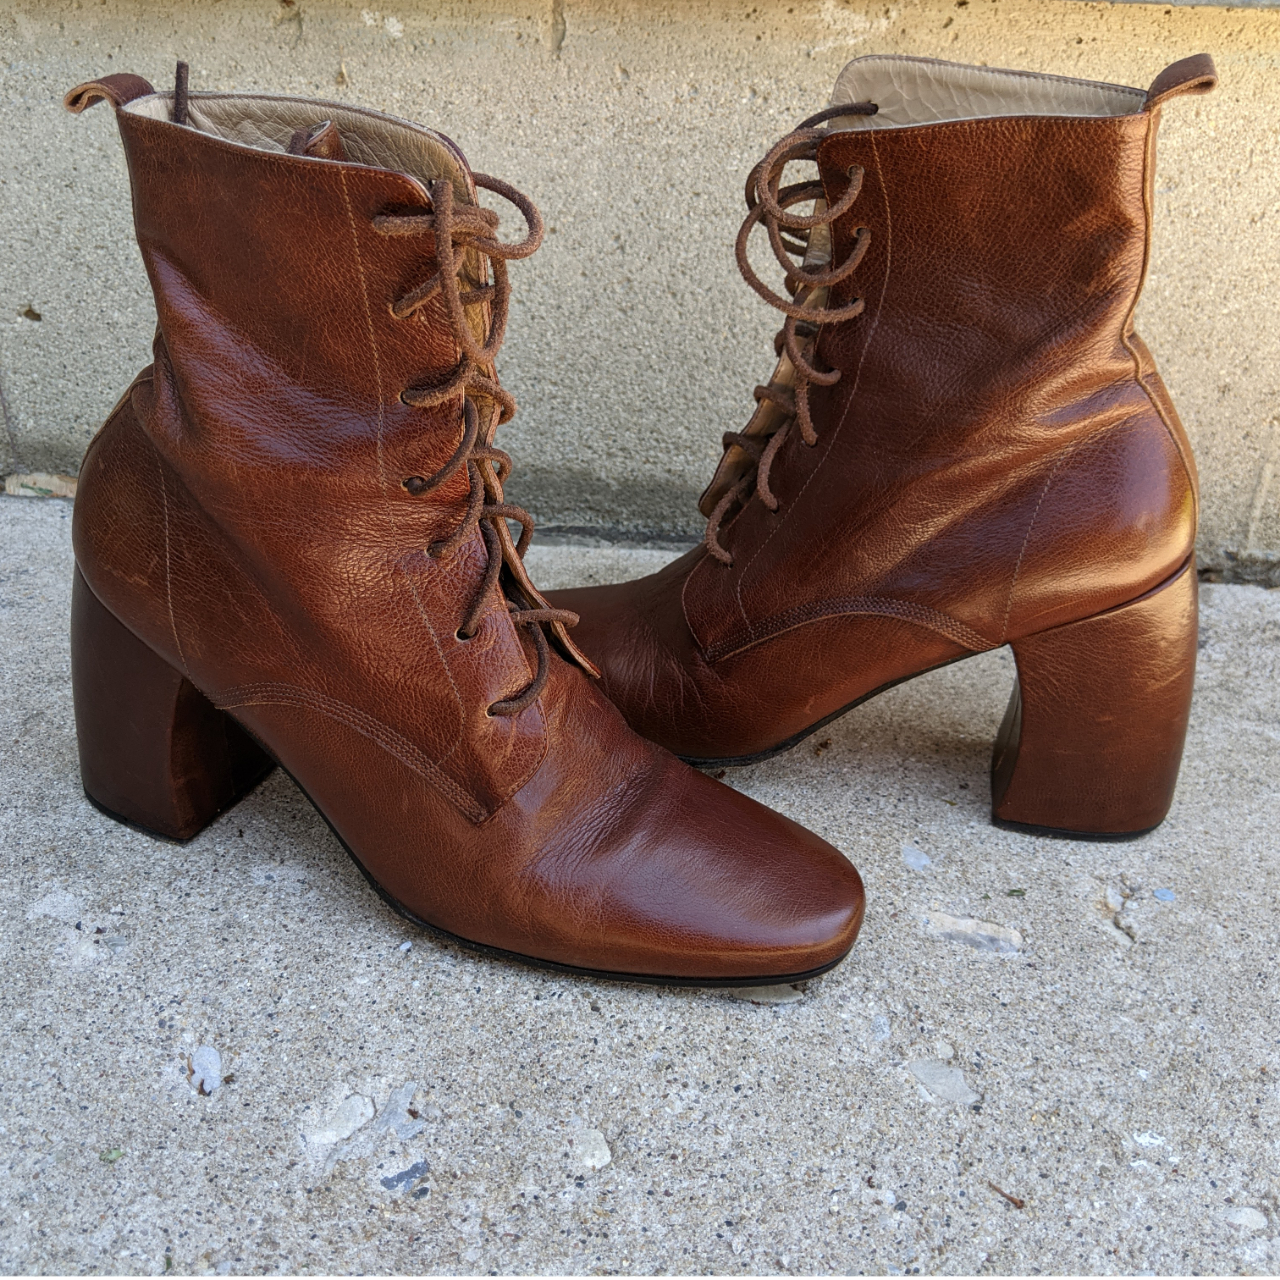 Product Image 1 - Ann Demeulemeester Brown Lace Up